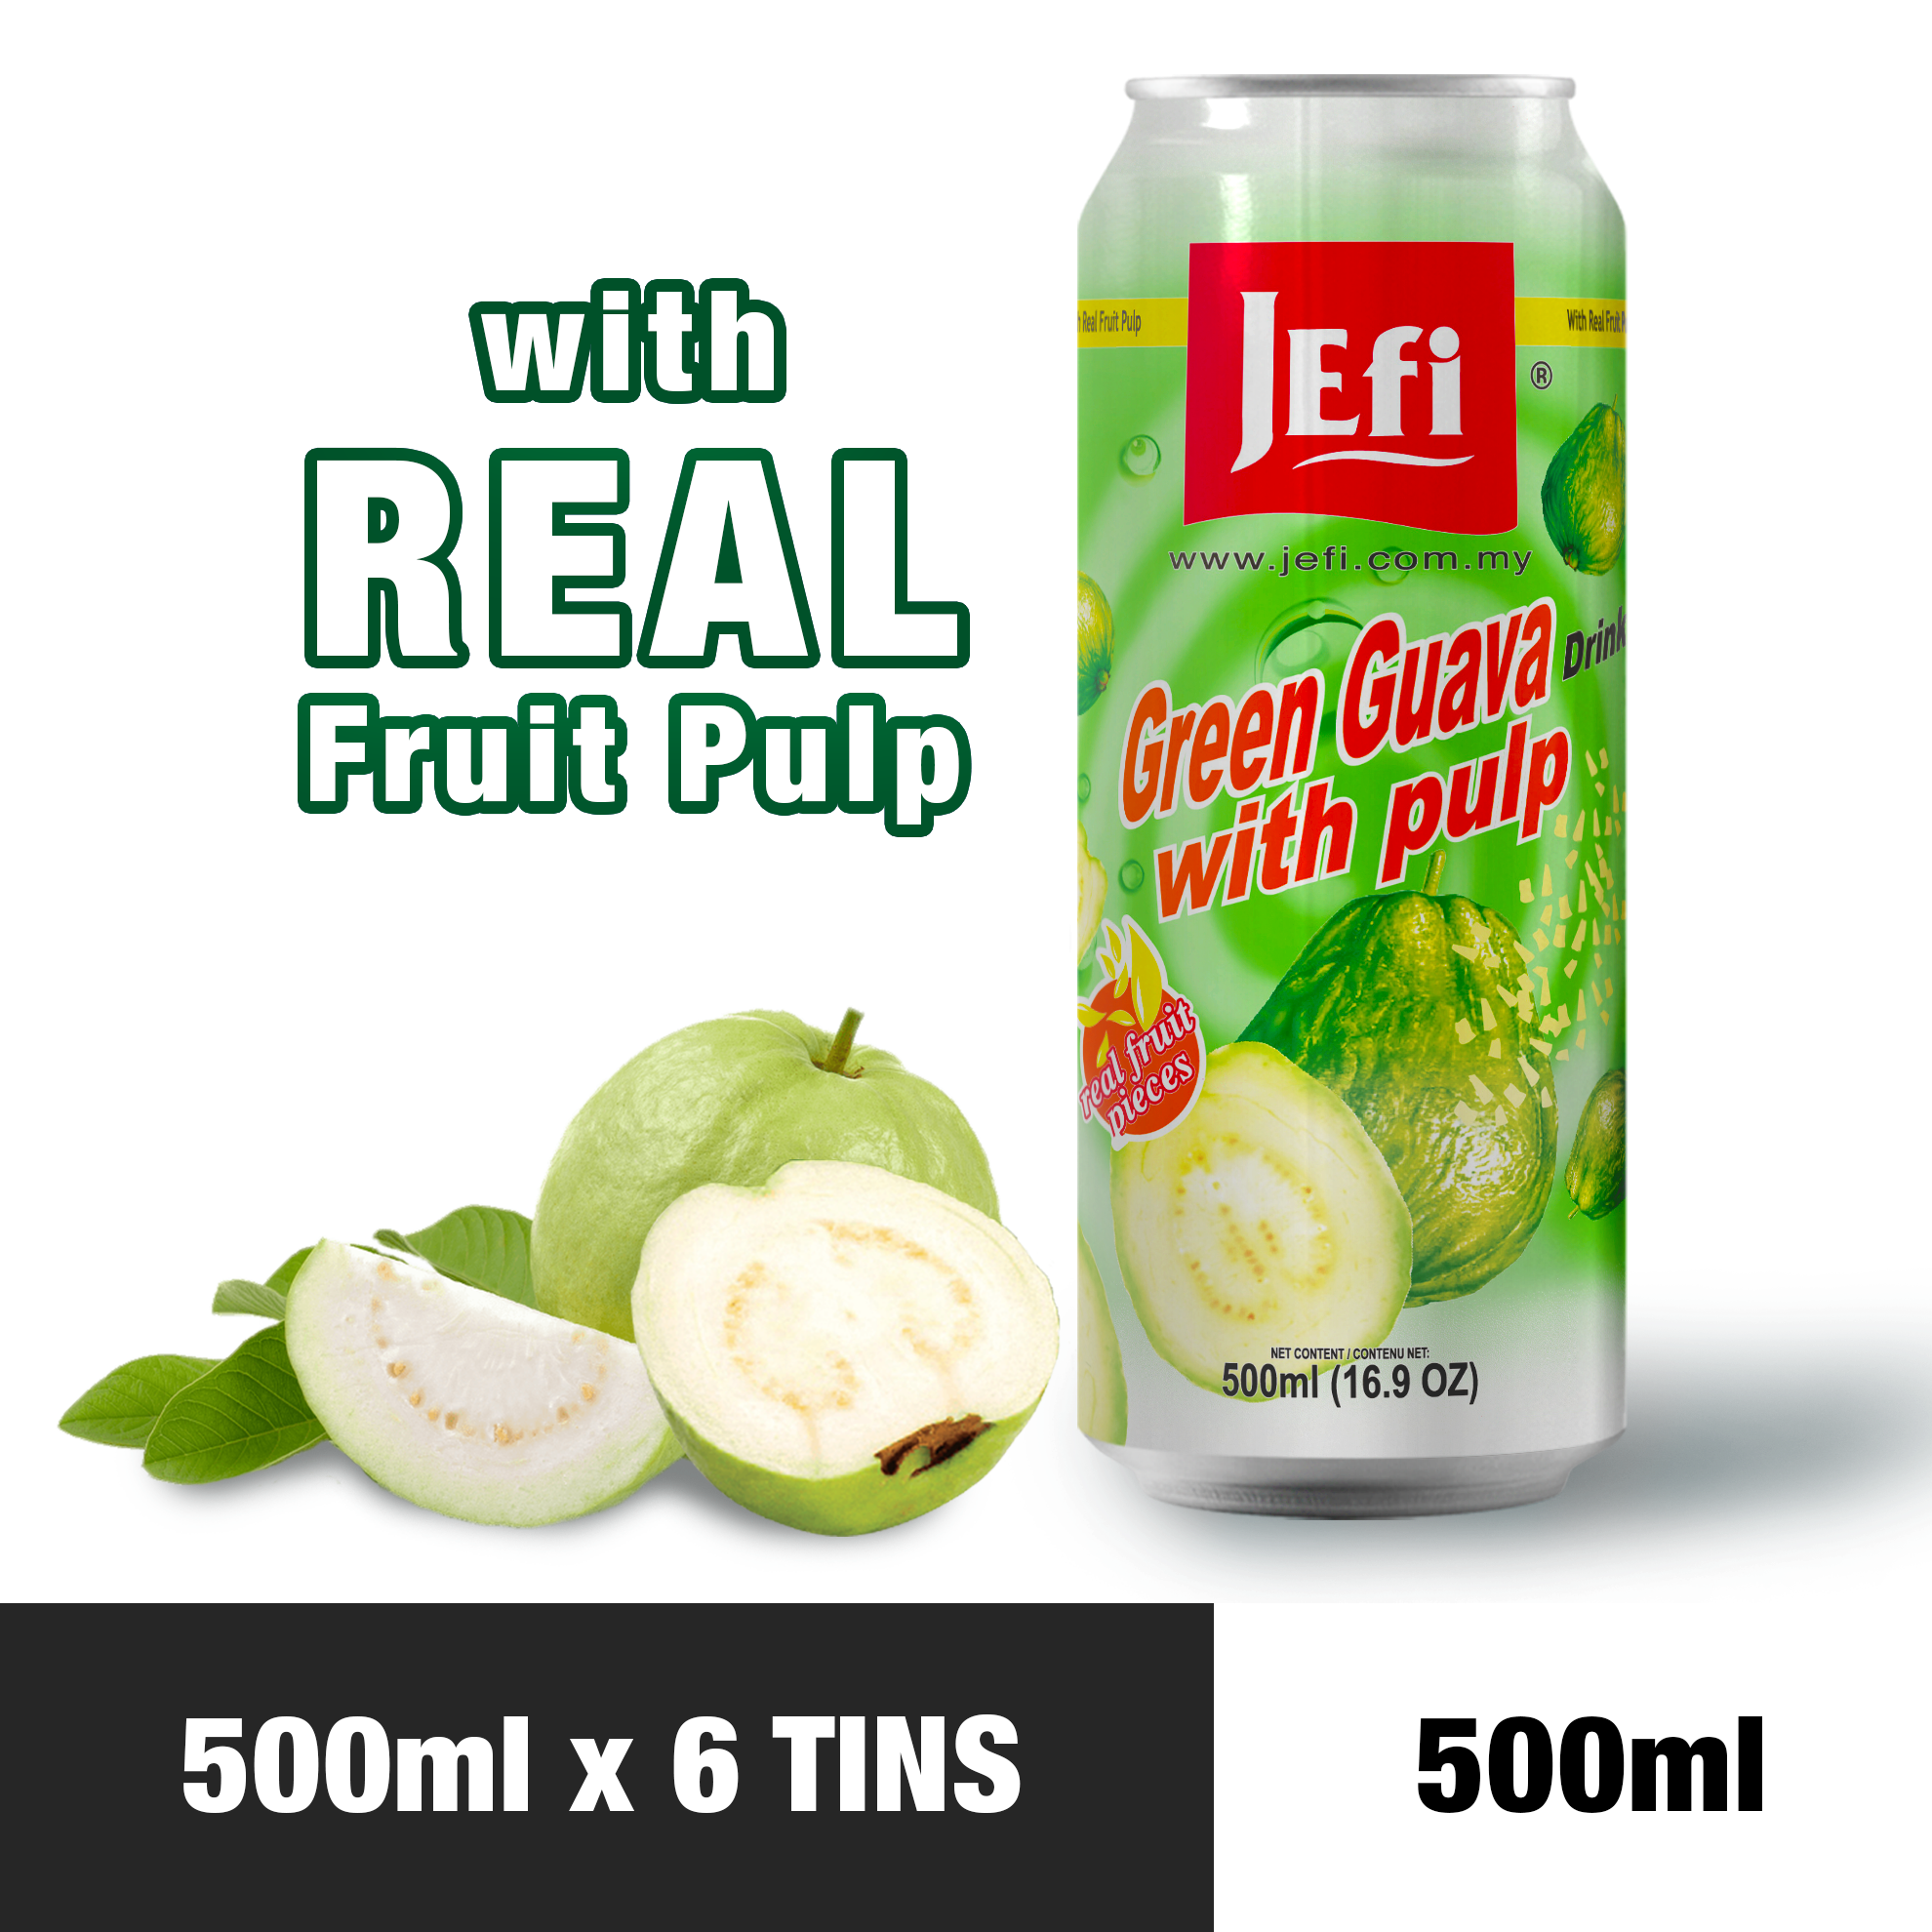 JEFI Green Guava Drink with Real Fruit Pulp (500ml x 6tins)